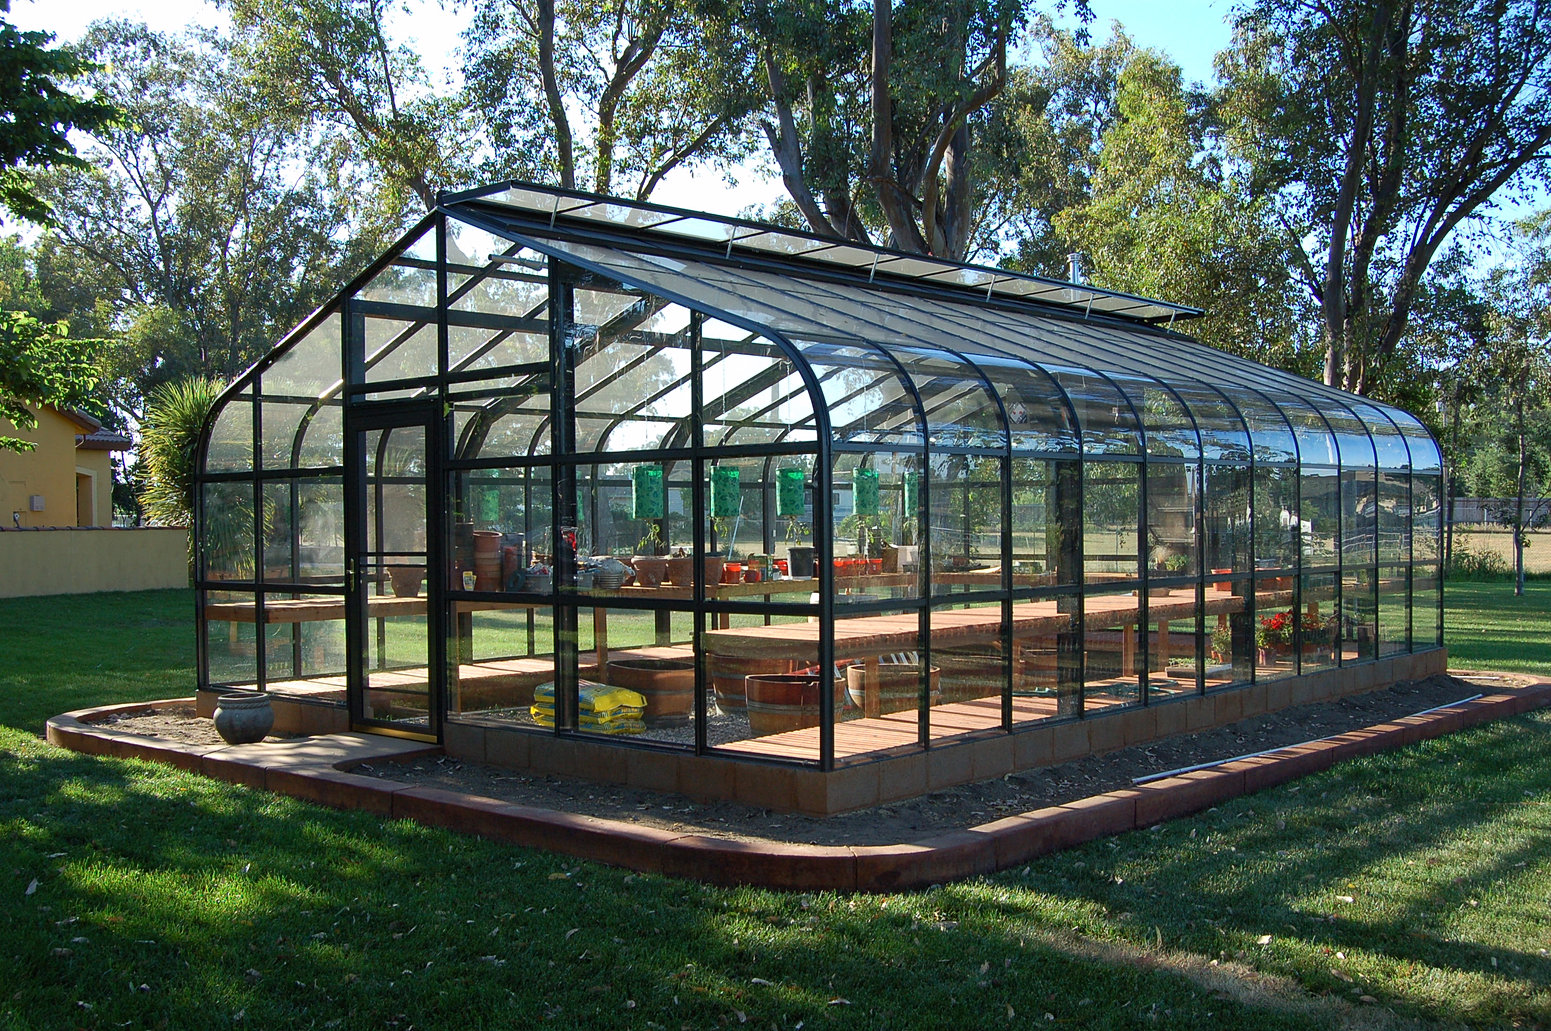 Buena vista sunrooms sunrooms greenhouses skylights for Greenhouse skylights